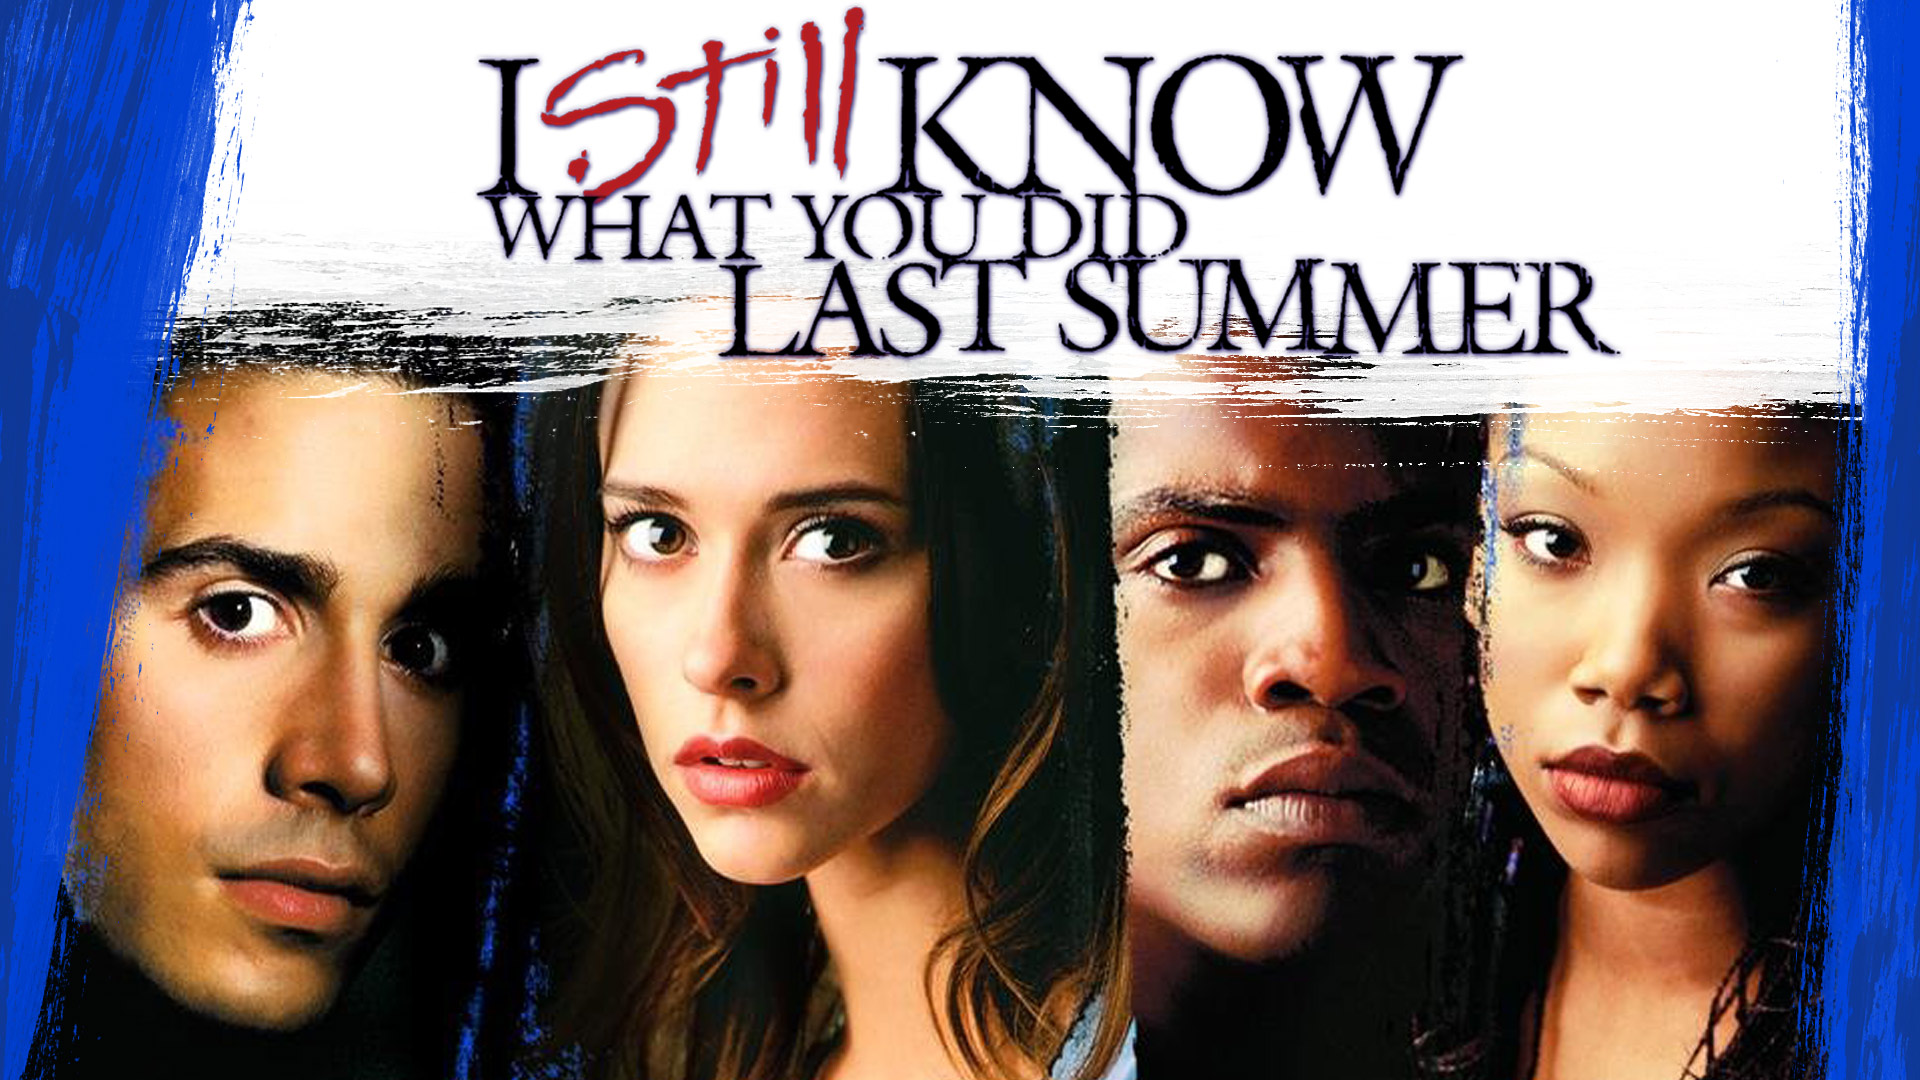 Amazon.com: Watch I Know What You Did Last Summer | Prime Video